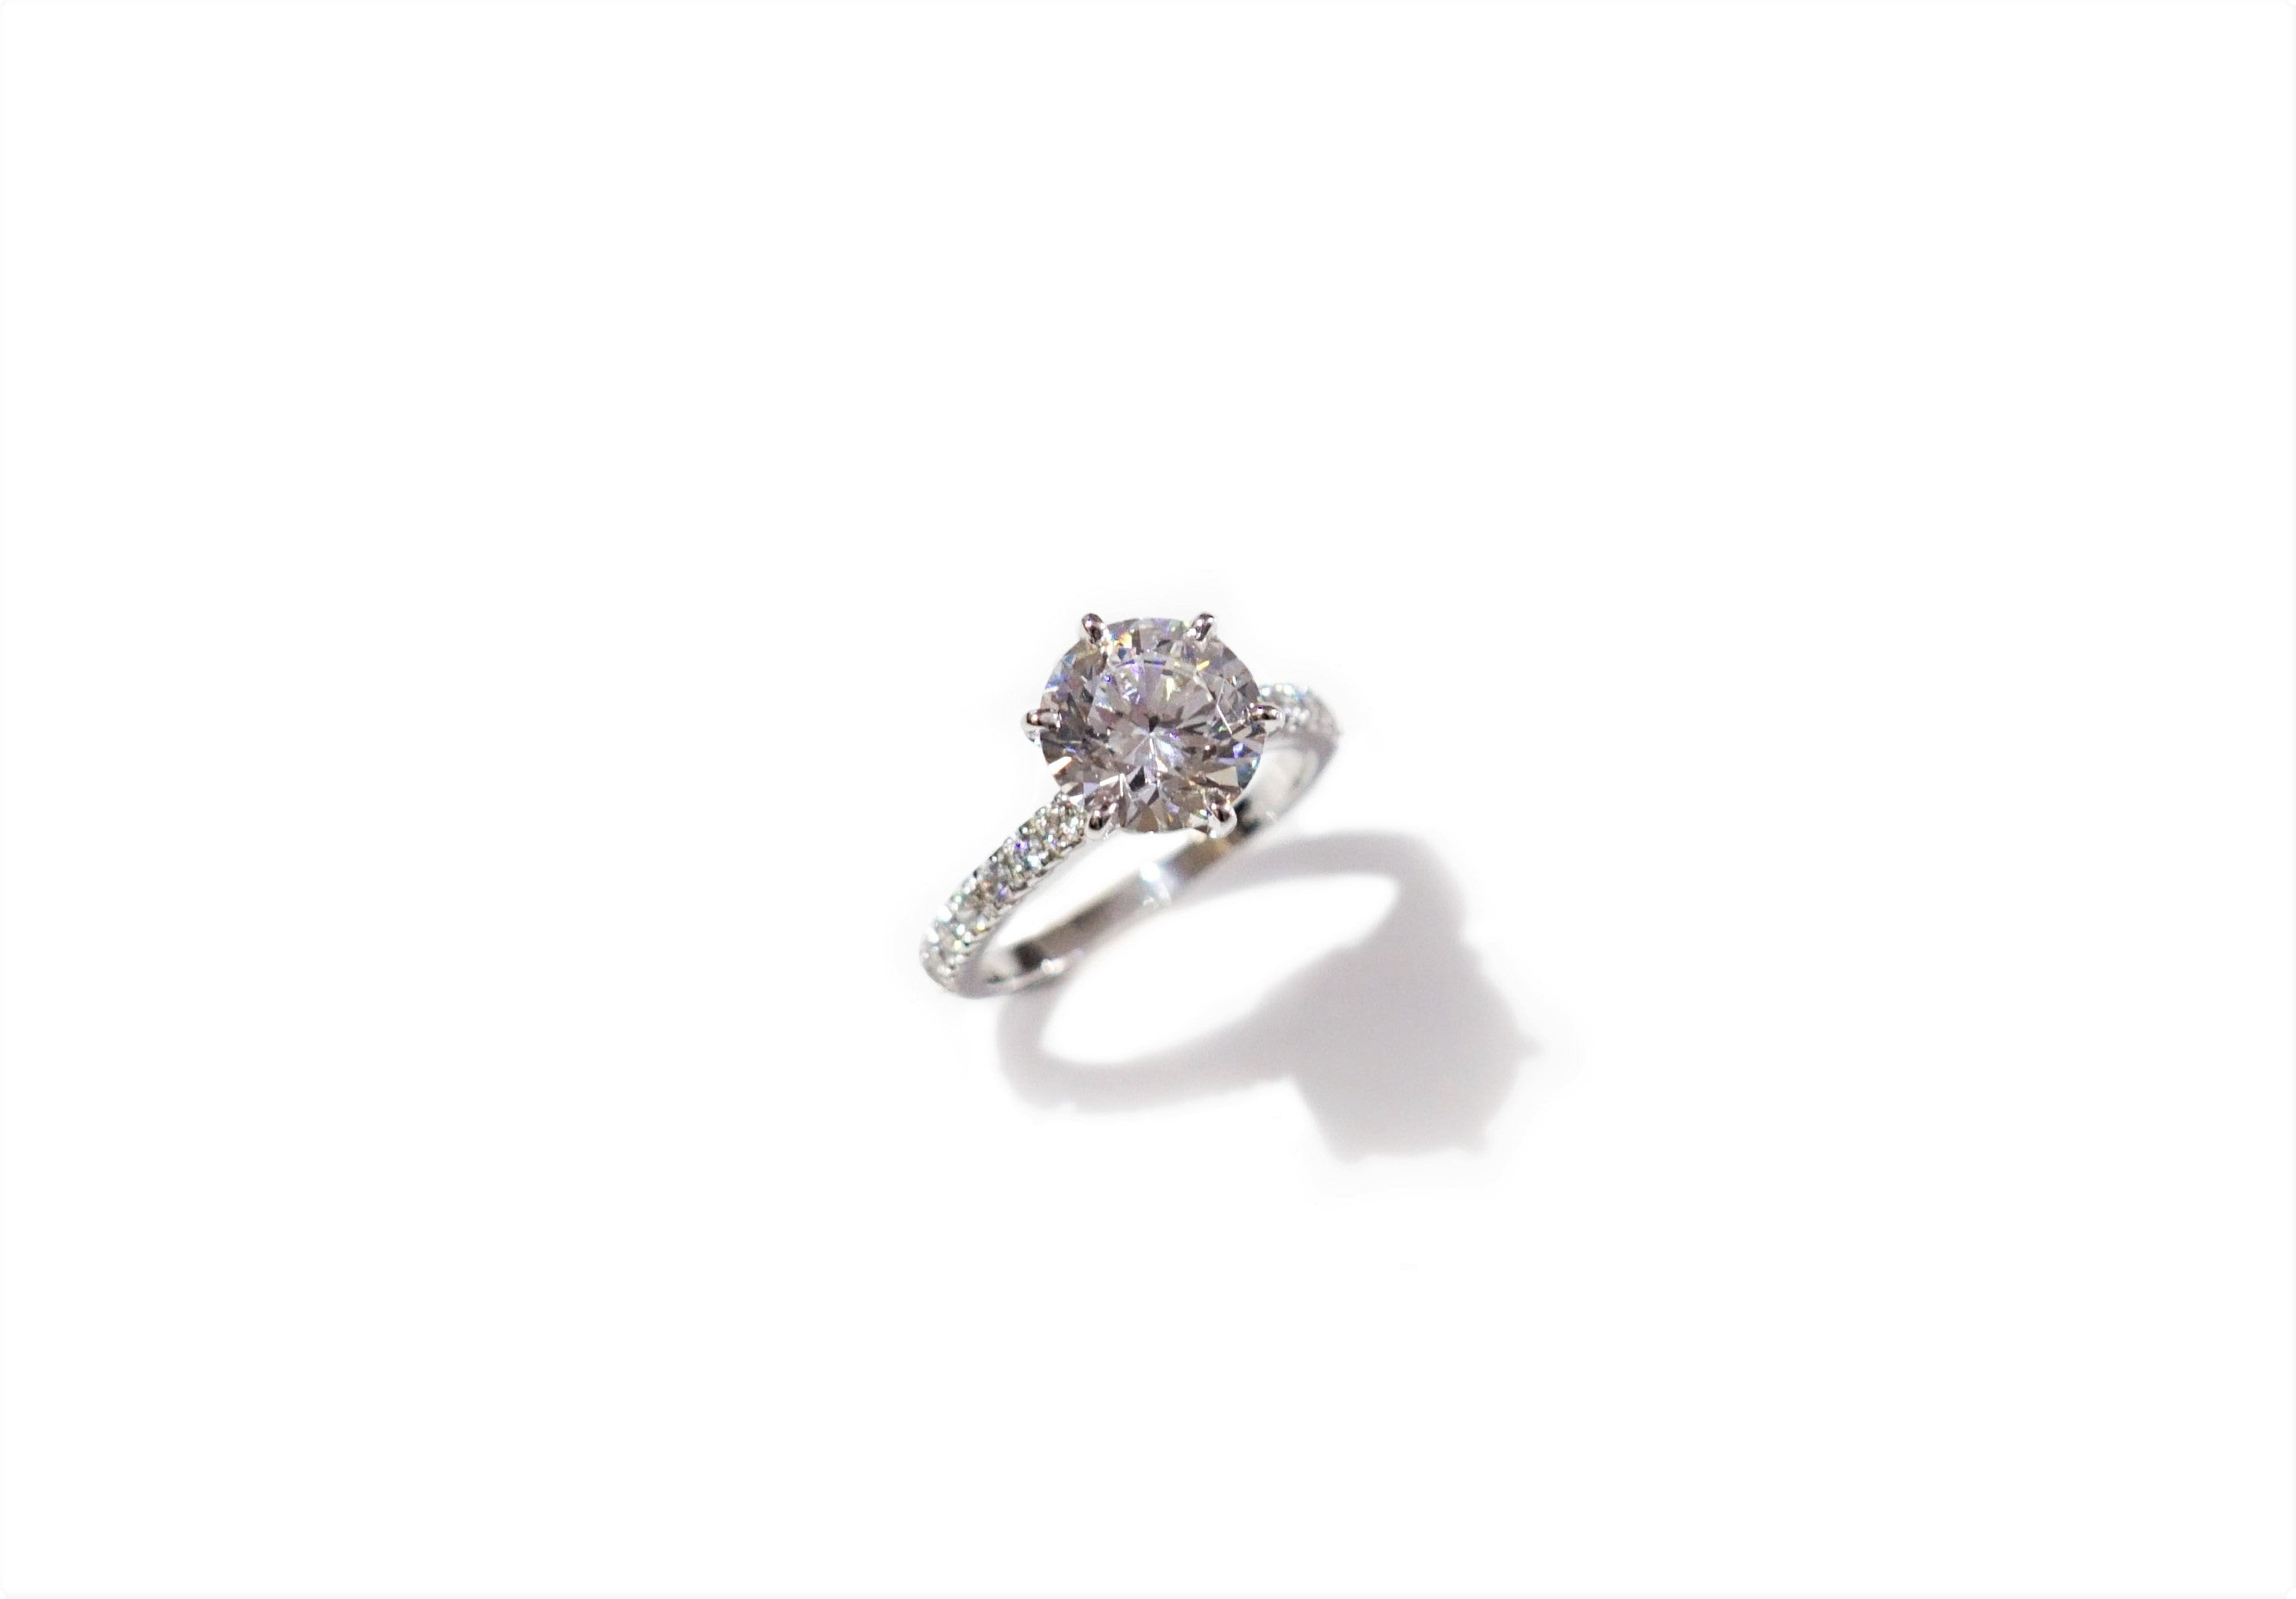 ring hand rings s carat jewellry engagement prong diamond on weddingbee round beautiful website